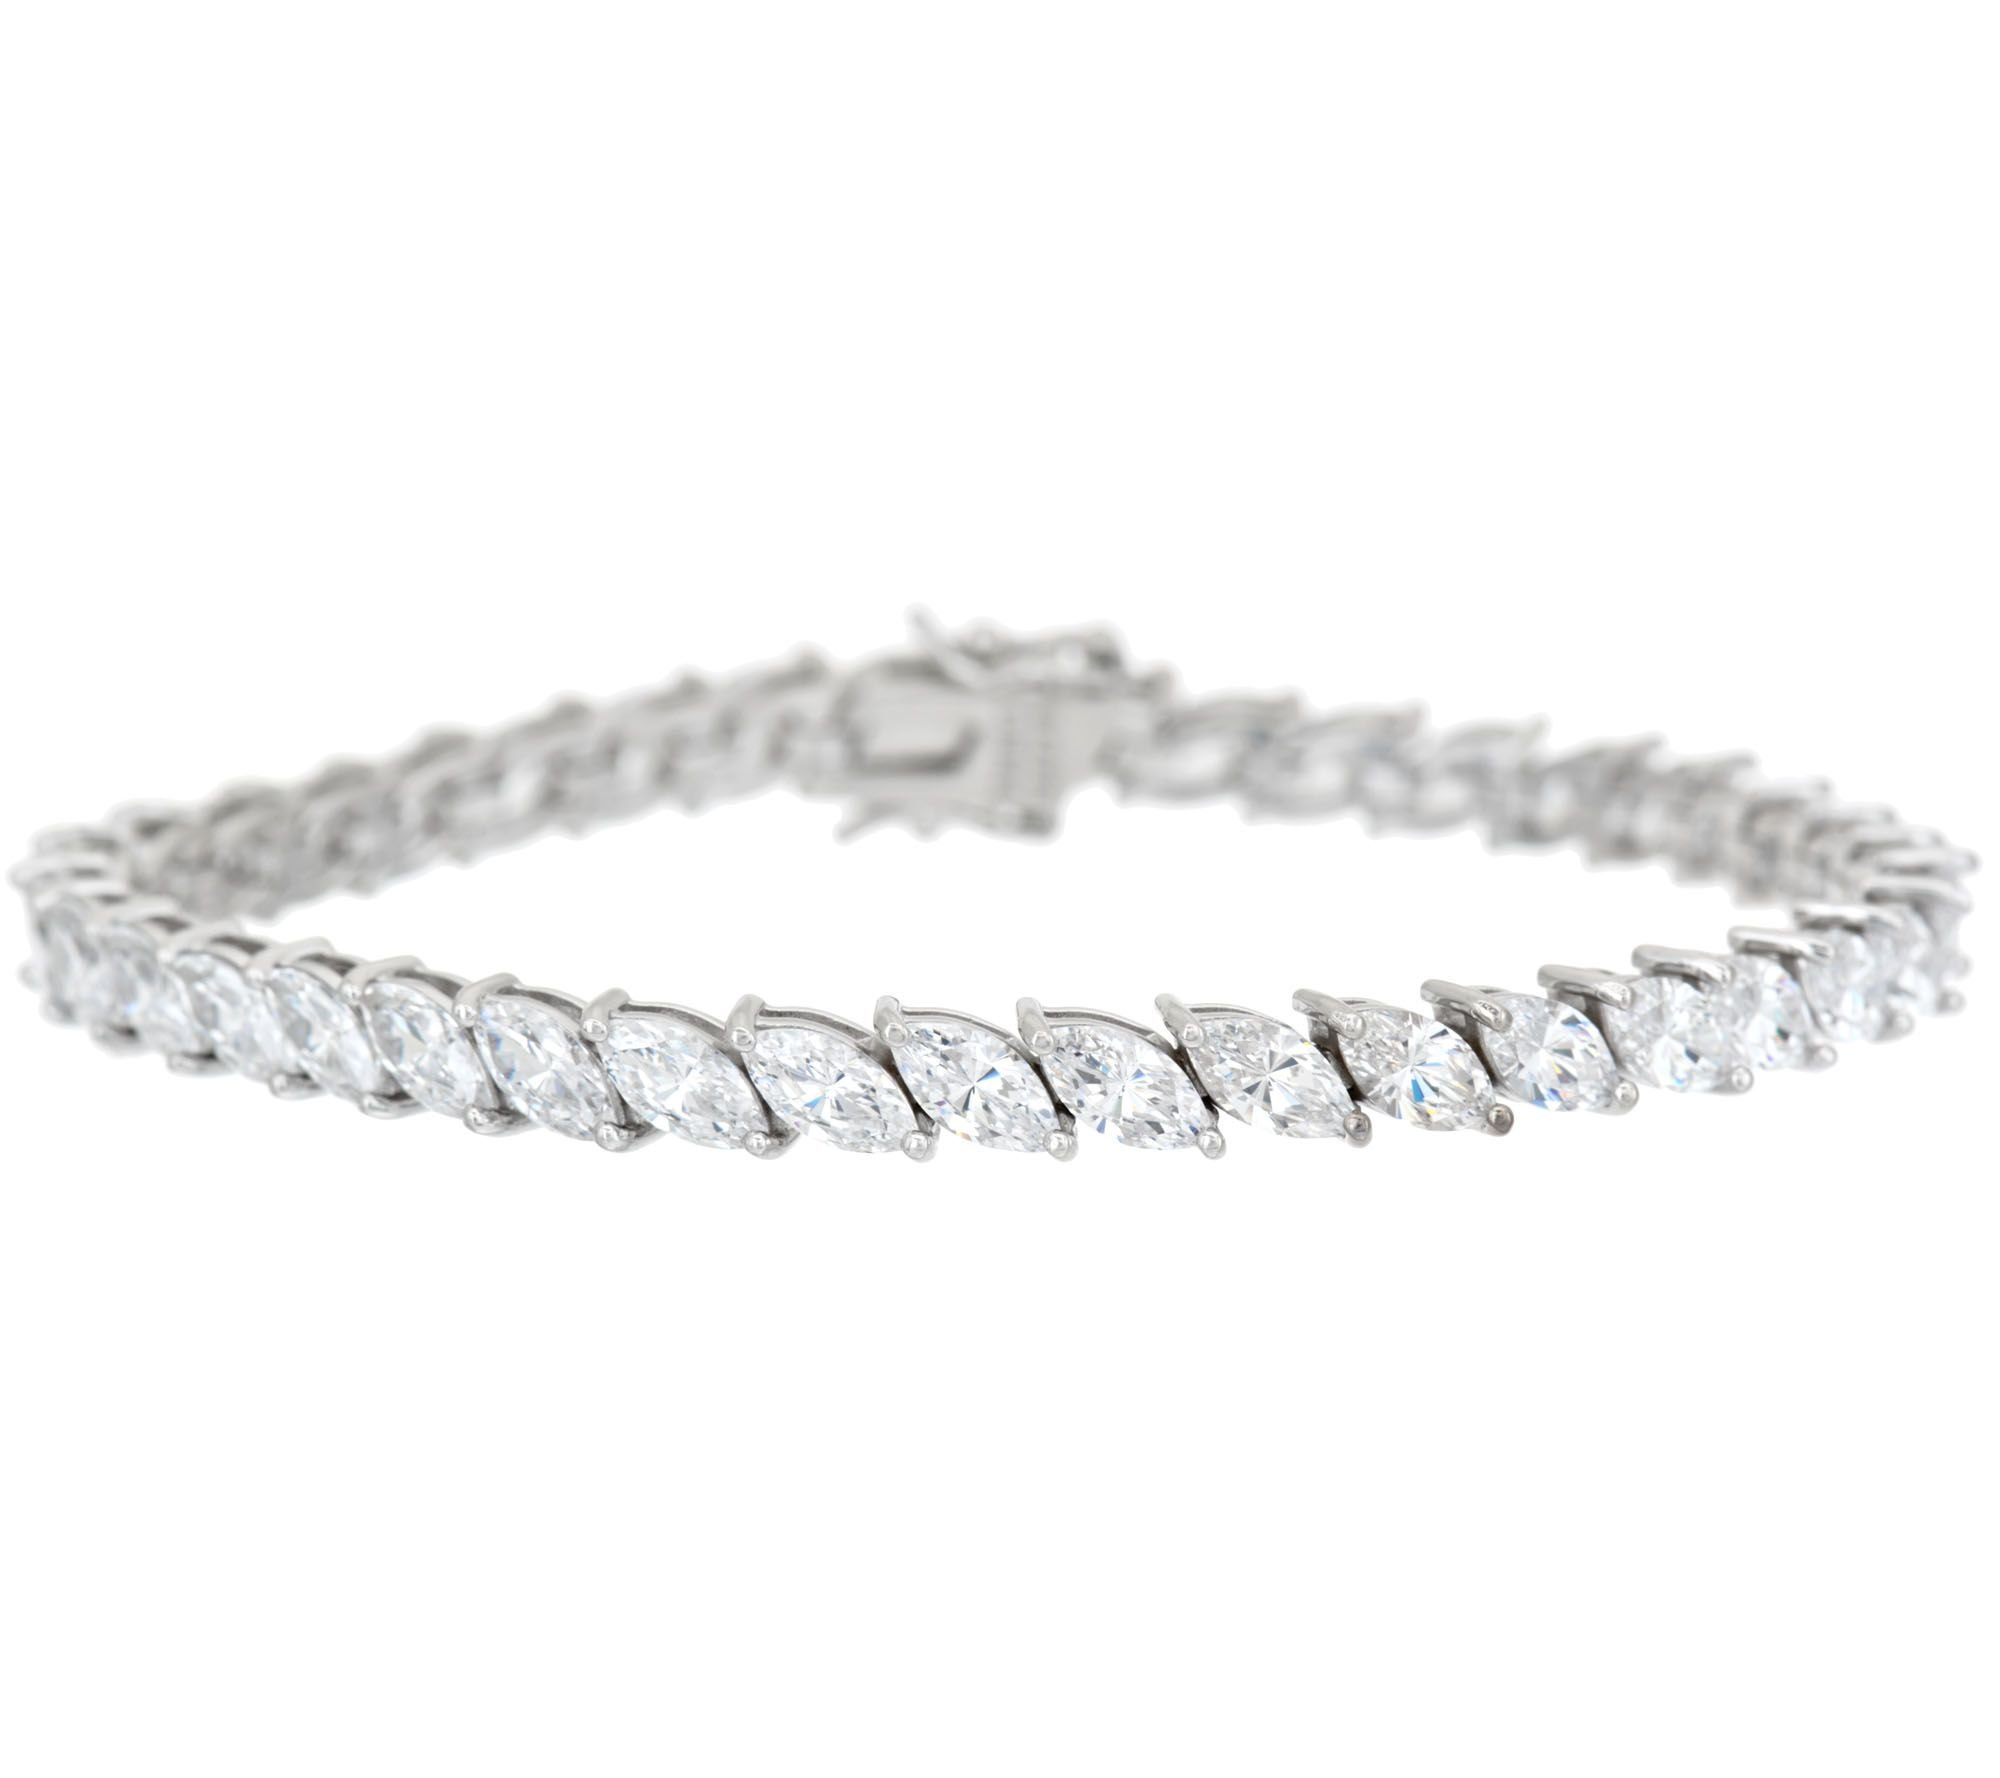 Smjewels Marquise Cut D/VVS1 Diamond Tennis Bracelet In 14K White Gold Plated Sterling by Smjewels